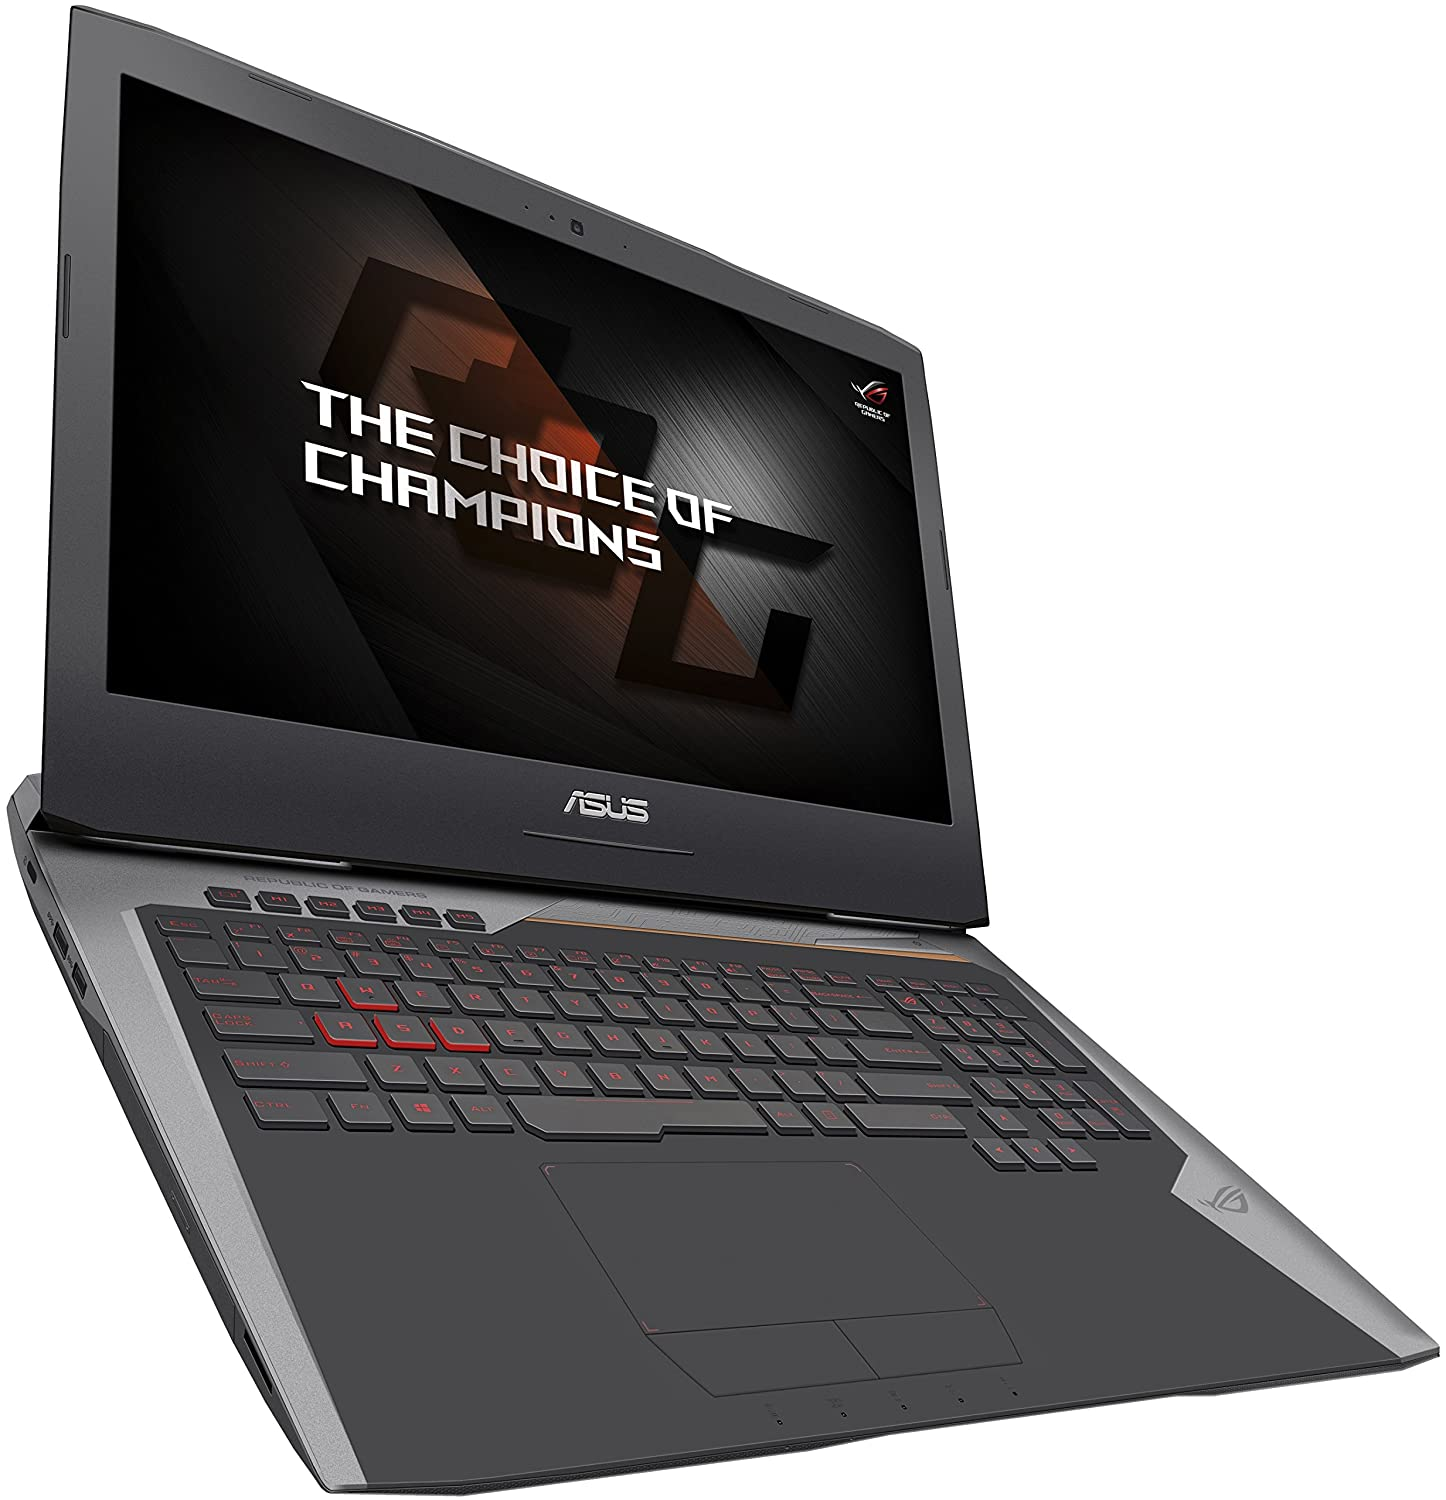 ASUS ROG G752VY-DH72 2.6GHz I7-6700HQ 15.6